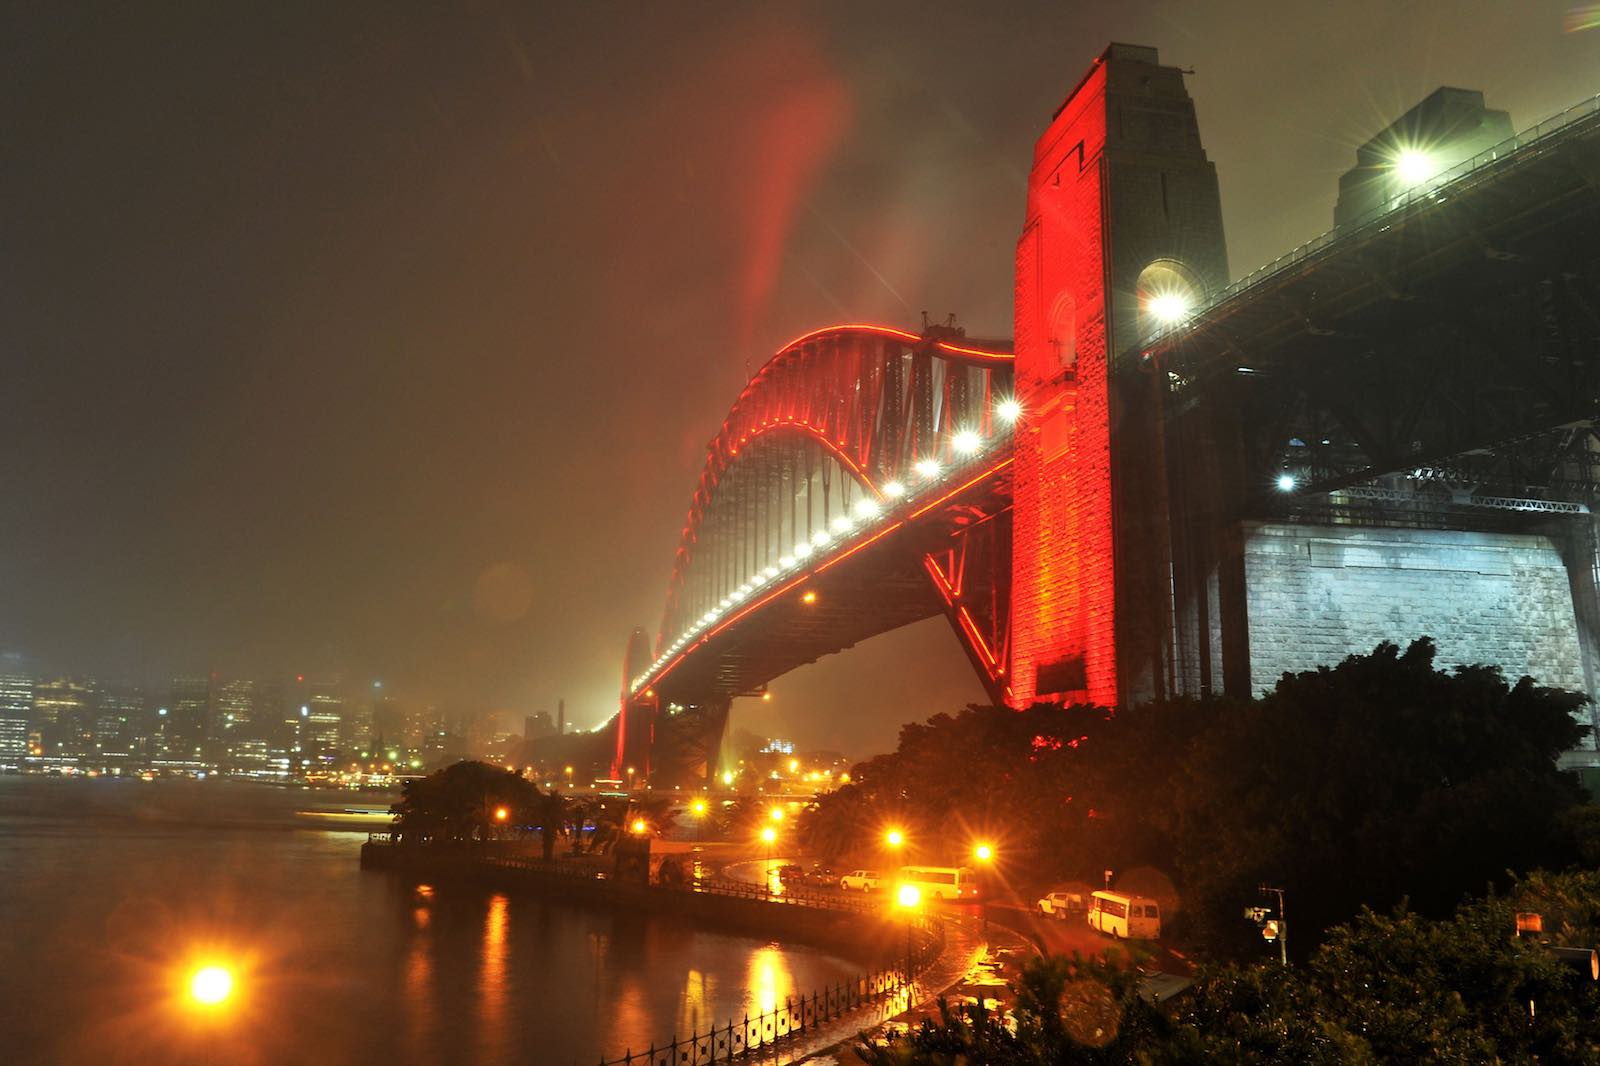 The Sydney Harbour Bridge is lit up in red ahead of the Lunar New Year in Sydney in February (Photo: Farooq Khan via Getty)